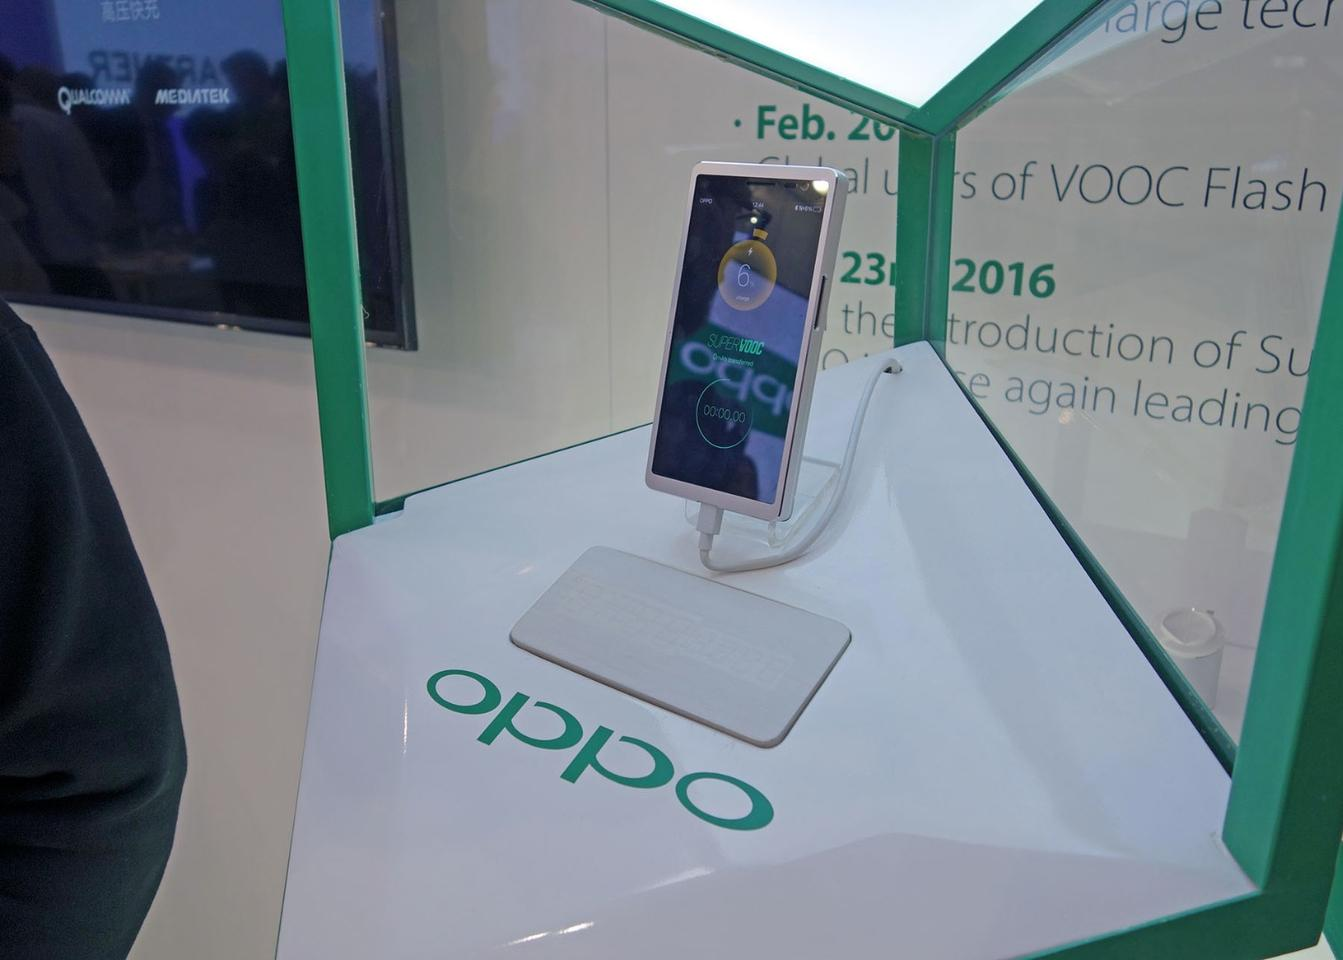 The 15-minute claim is based on a 2,500 mAh battery